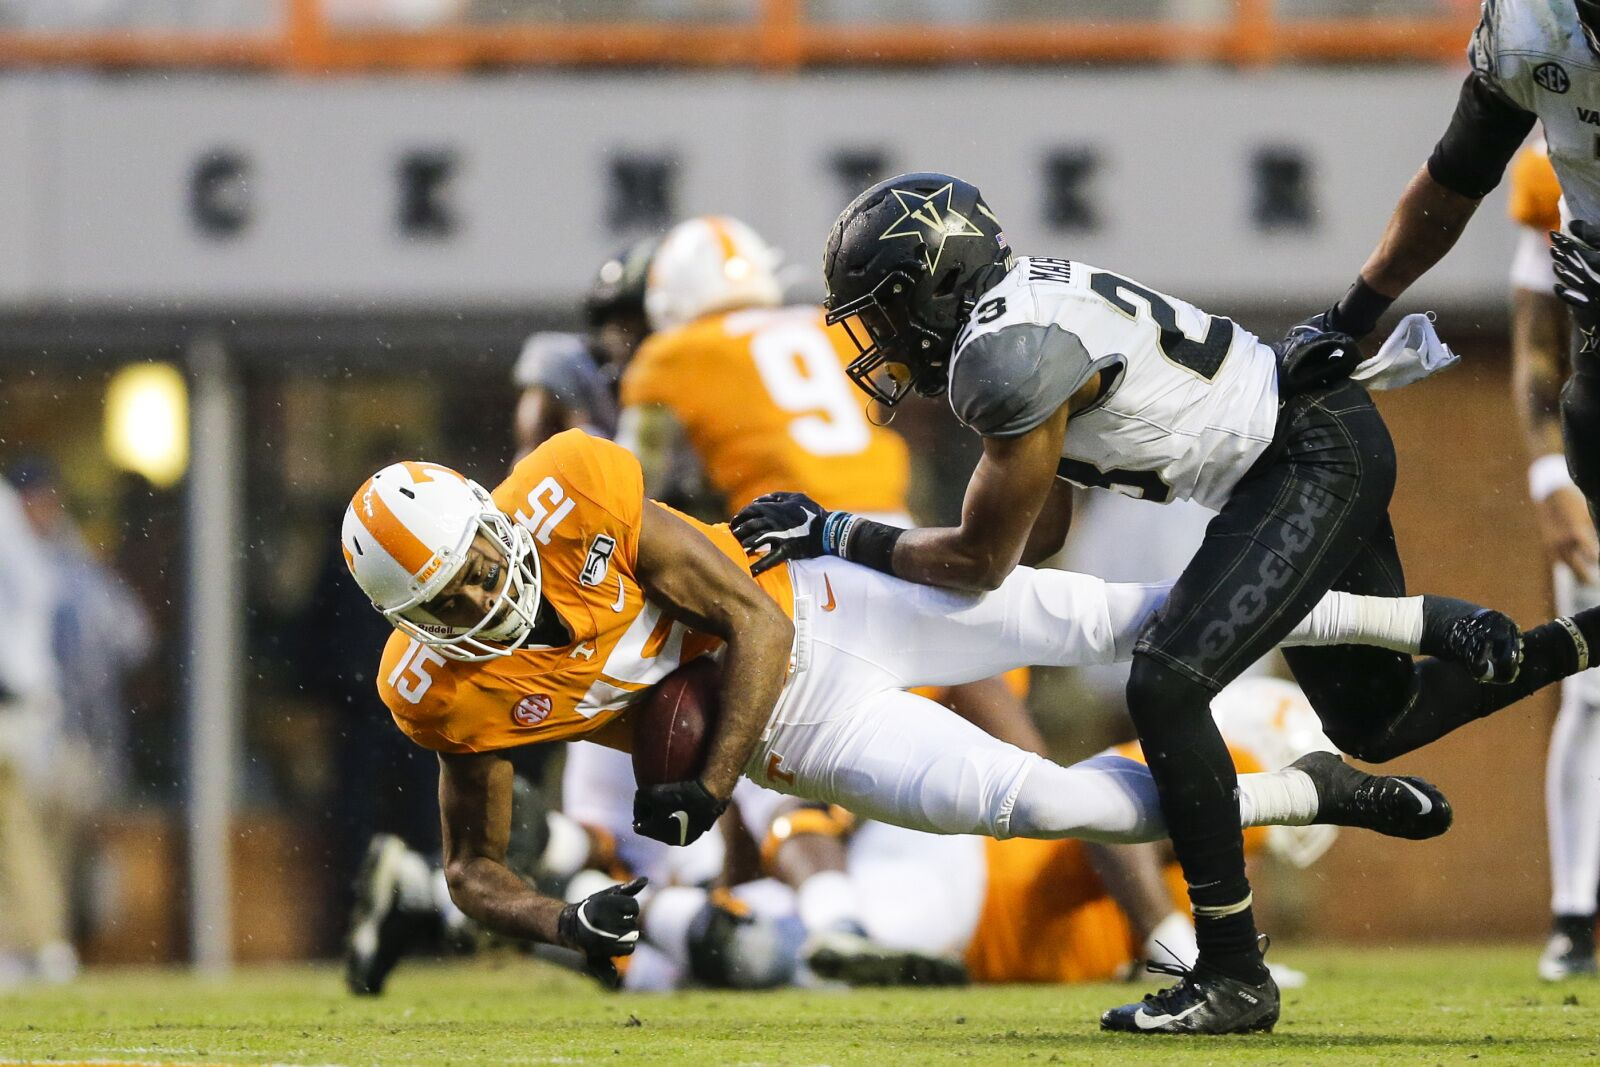 Tennessee football: Jauan Jennings suspended for first half of Vols bowl game